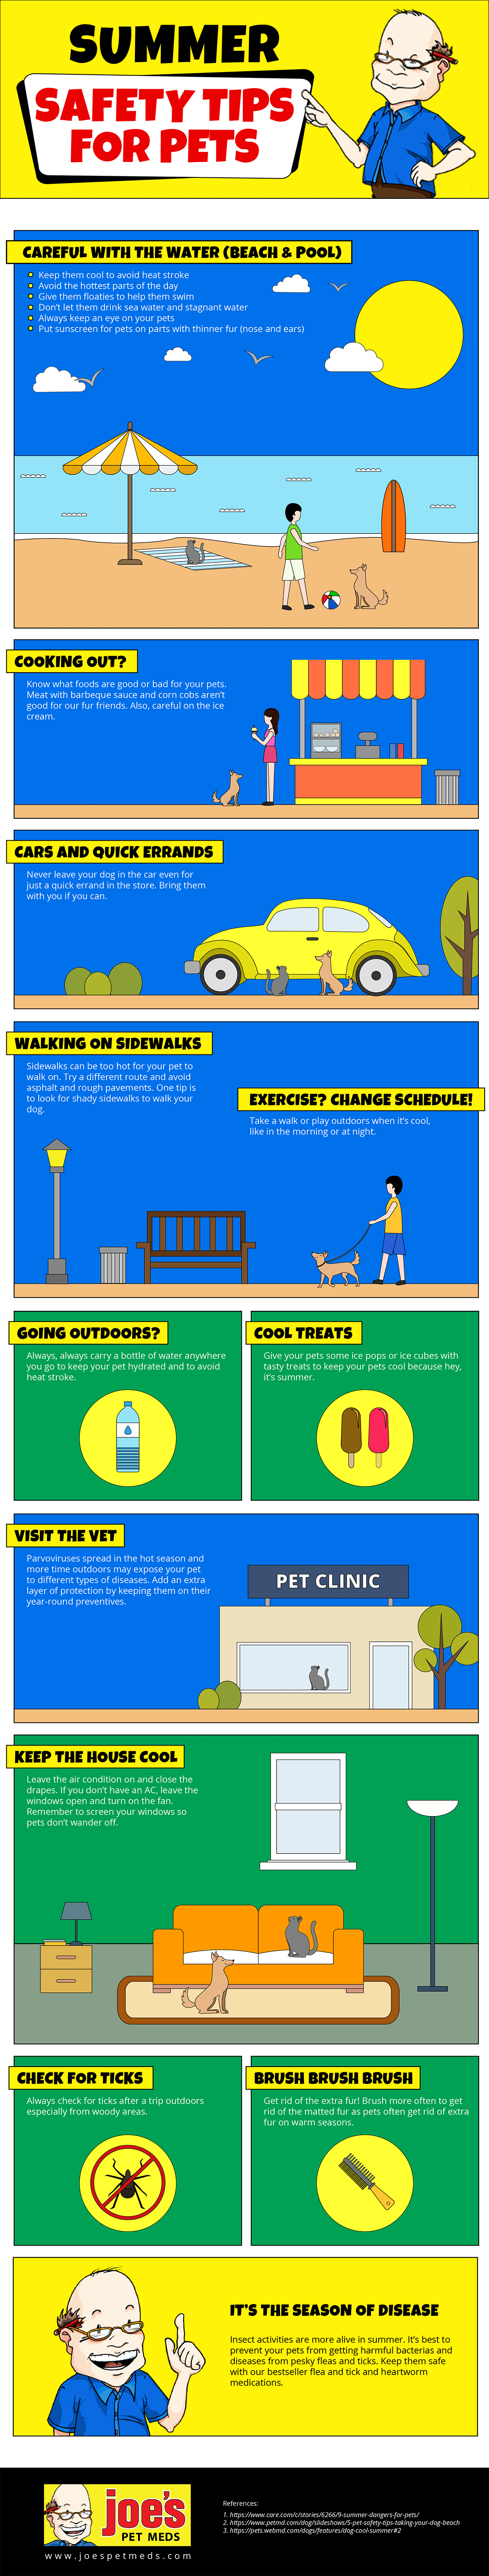 Summer Infographic Image